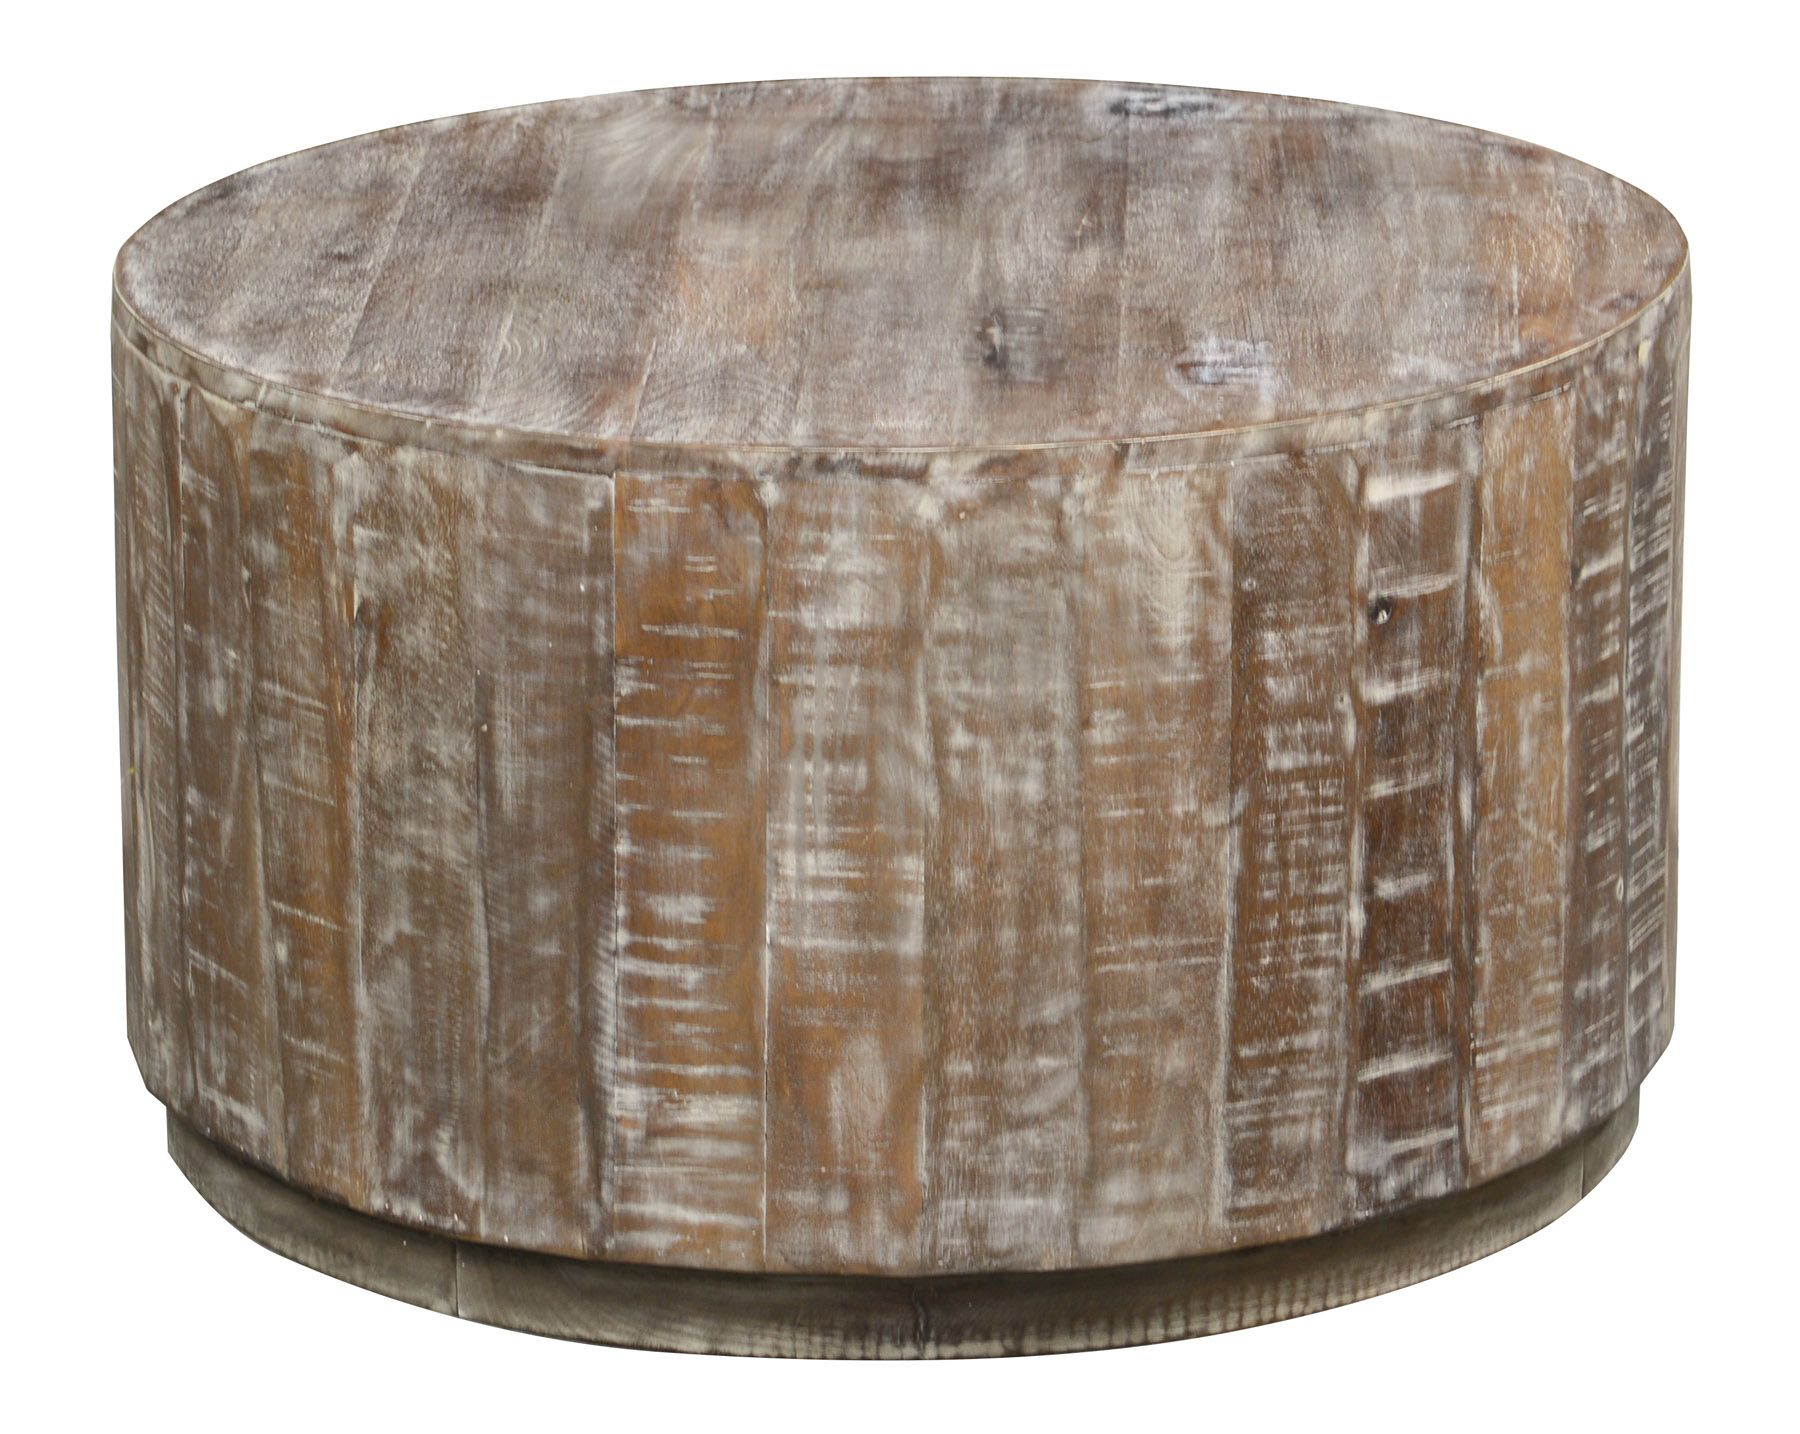 Laurel Round Cocktail Table 51010230 From Classic Home Crowley Round Wood Coffee Table Coffee Table Mango Wood Coffee Table [ 1434 x 1800 Pixel ]